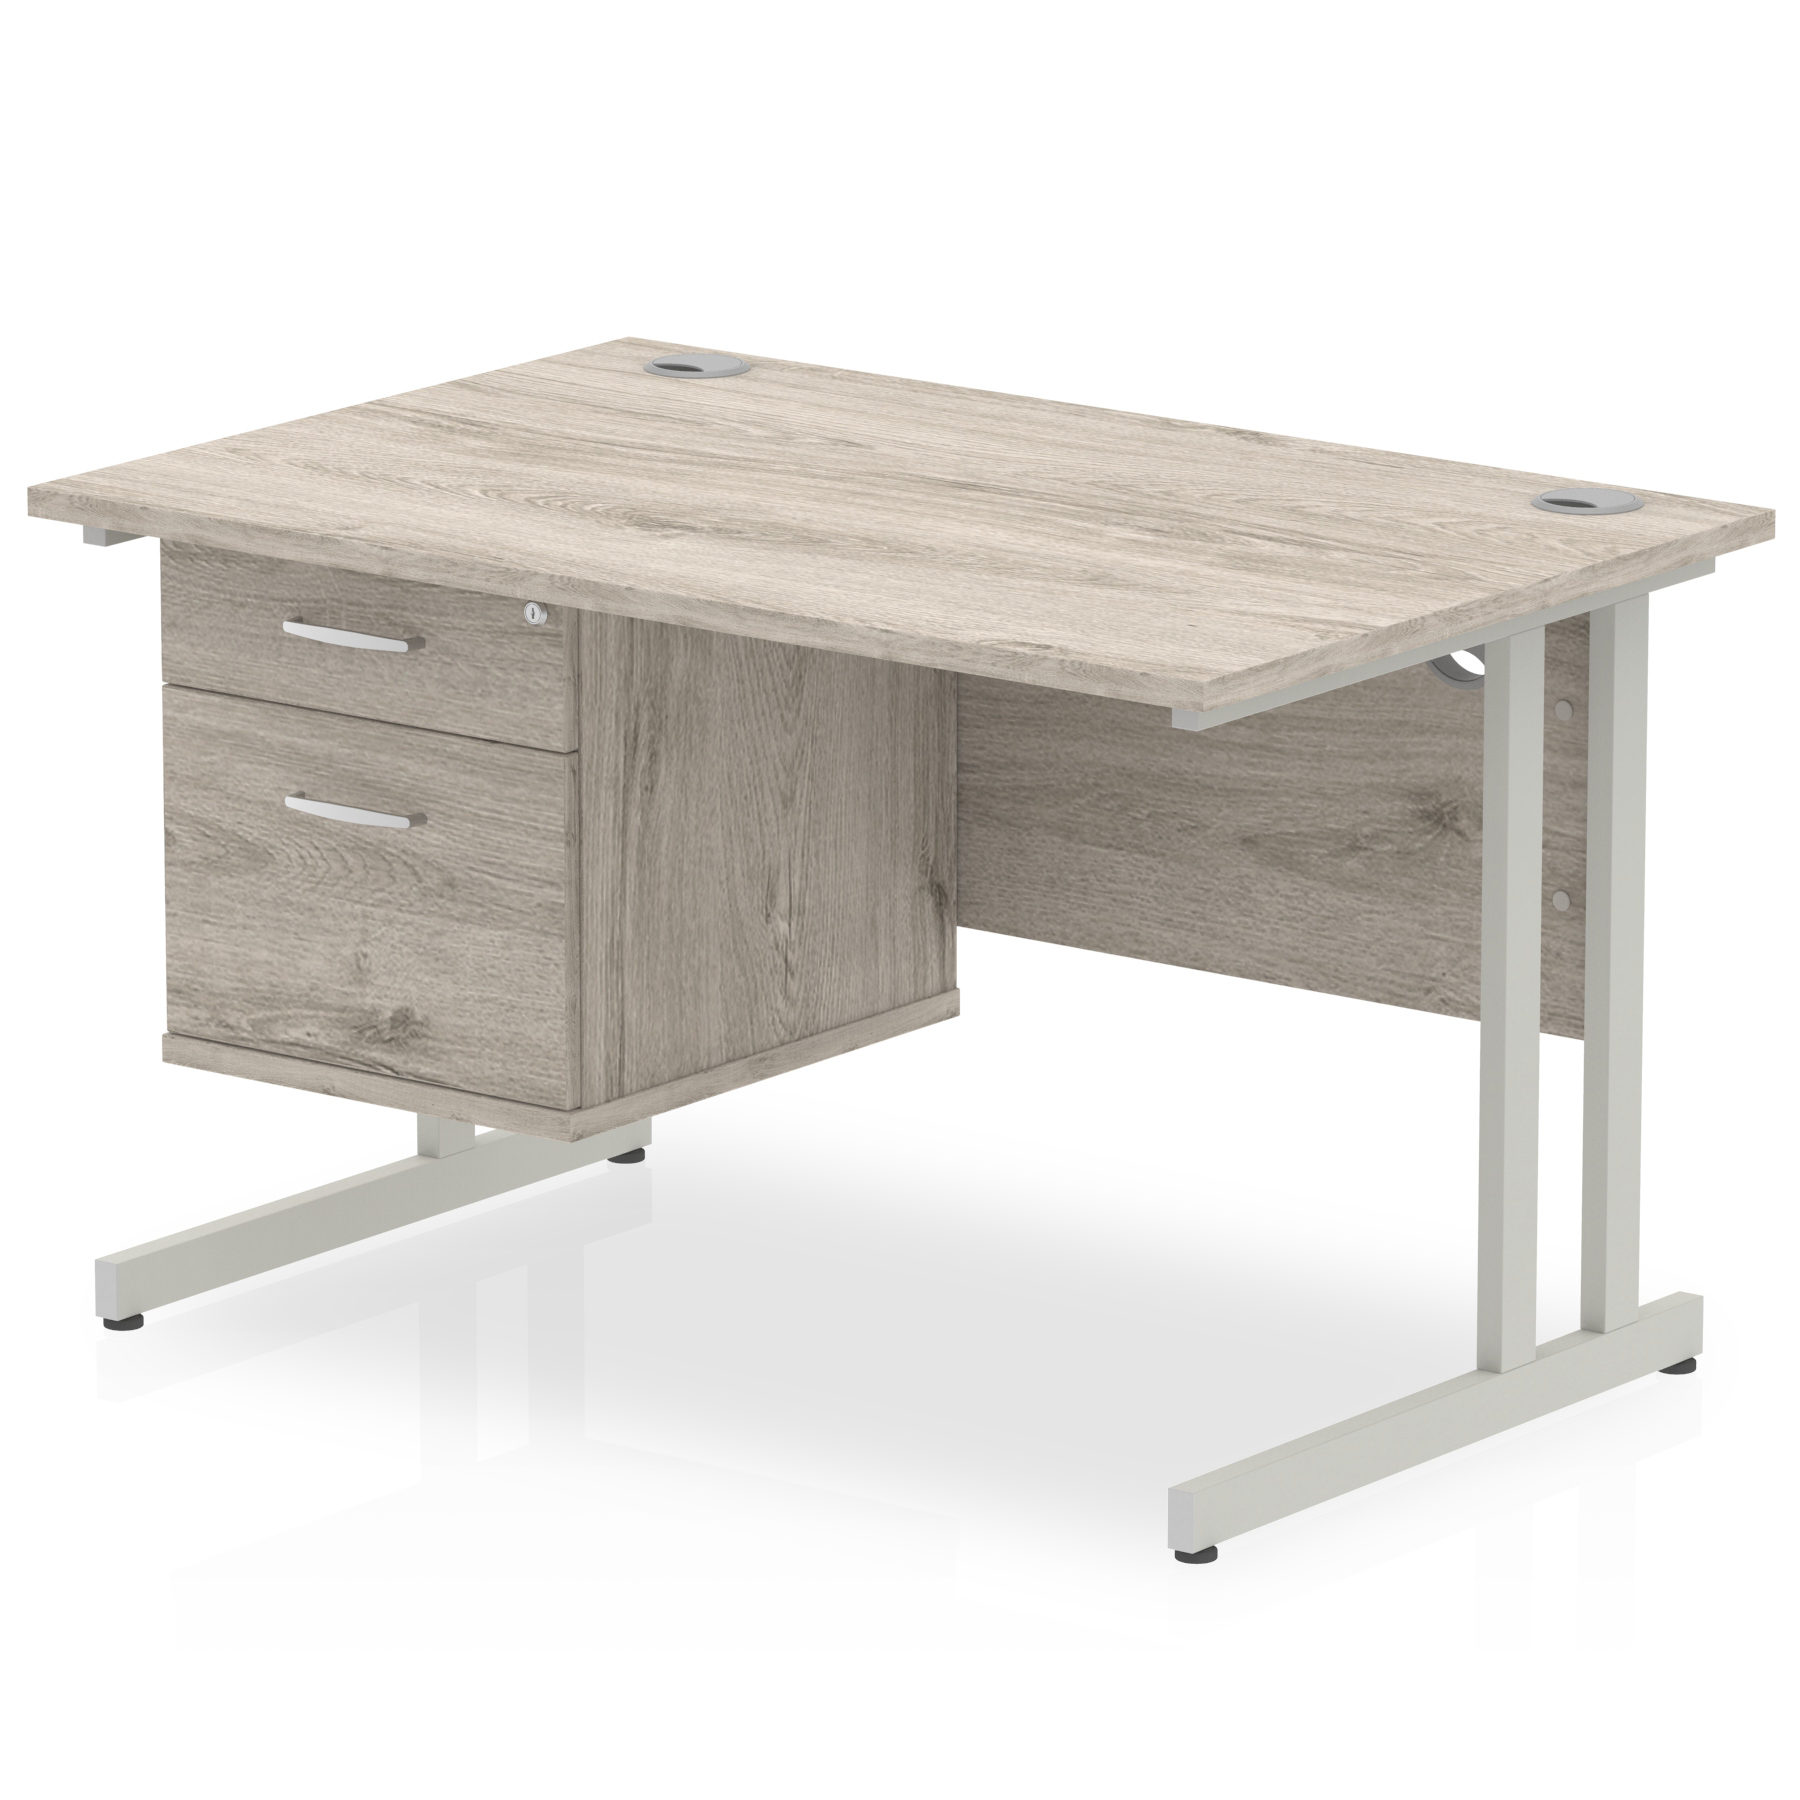 Desks Trexus Rectangular Desk Silver Cantilever Leg 1200x800mm Fixed Ped 2 Drawers Grey Oak Ref I003436